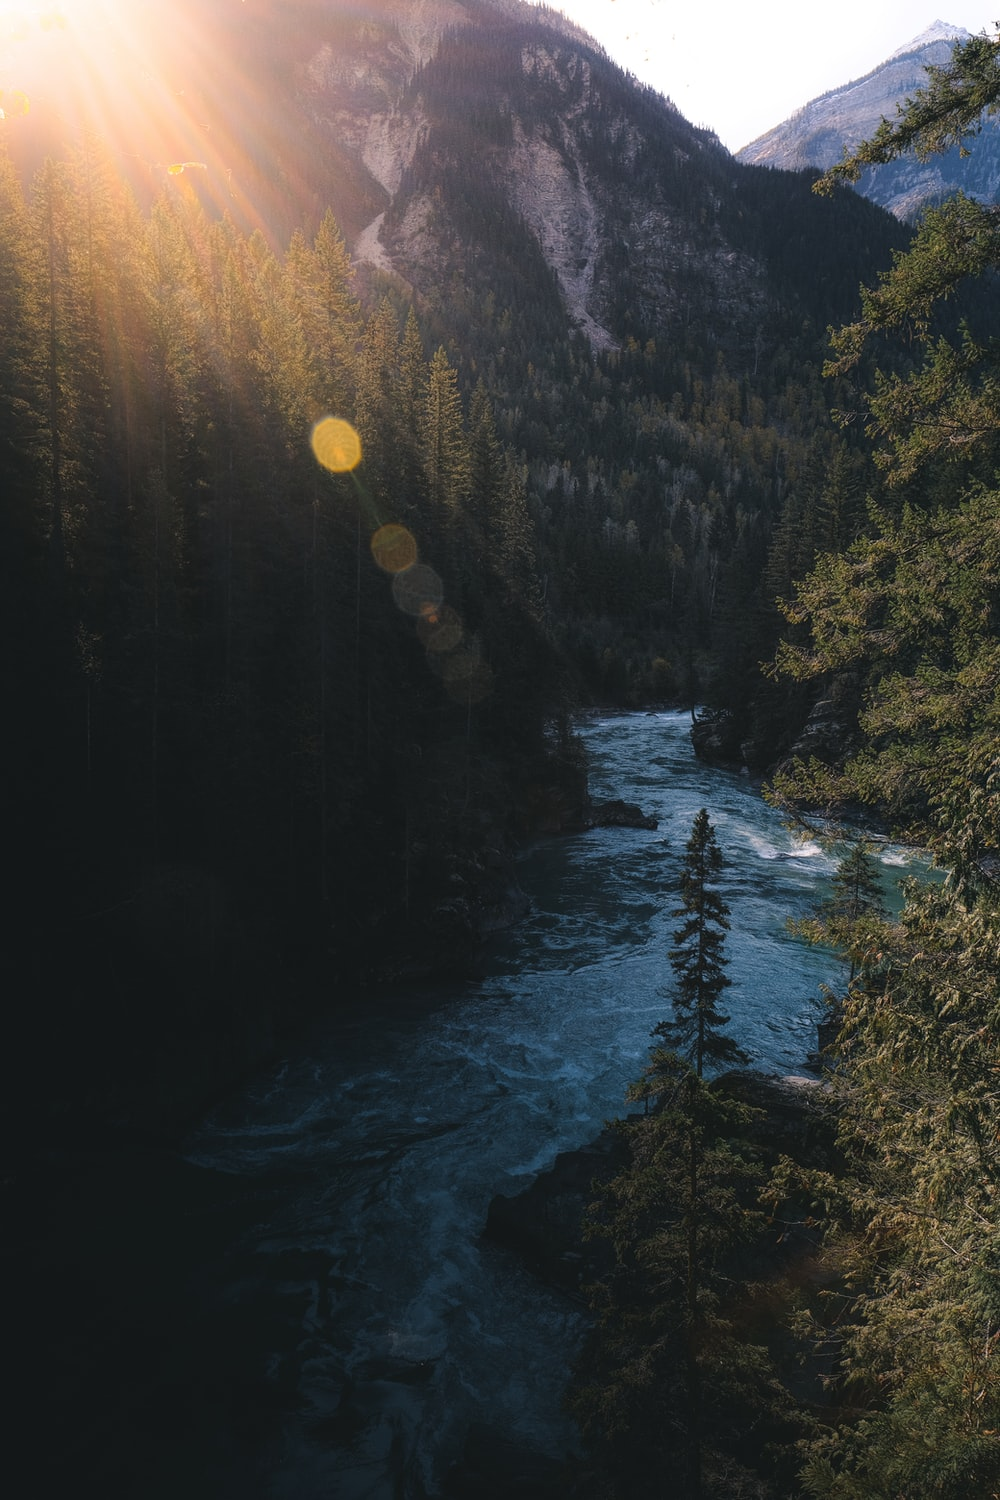 pine trees and river